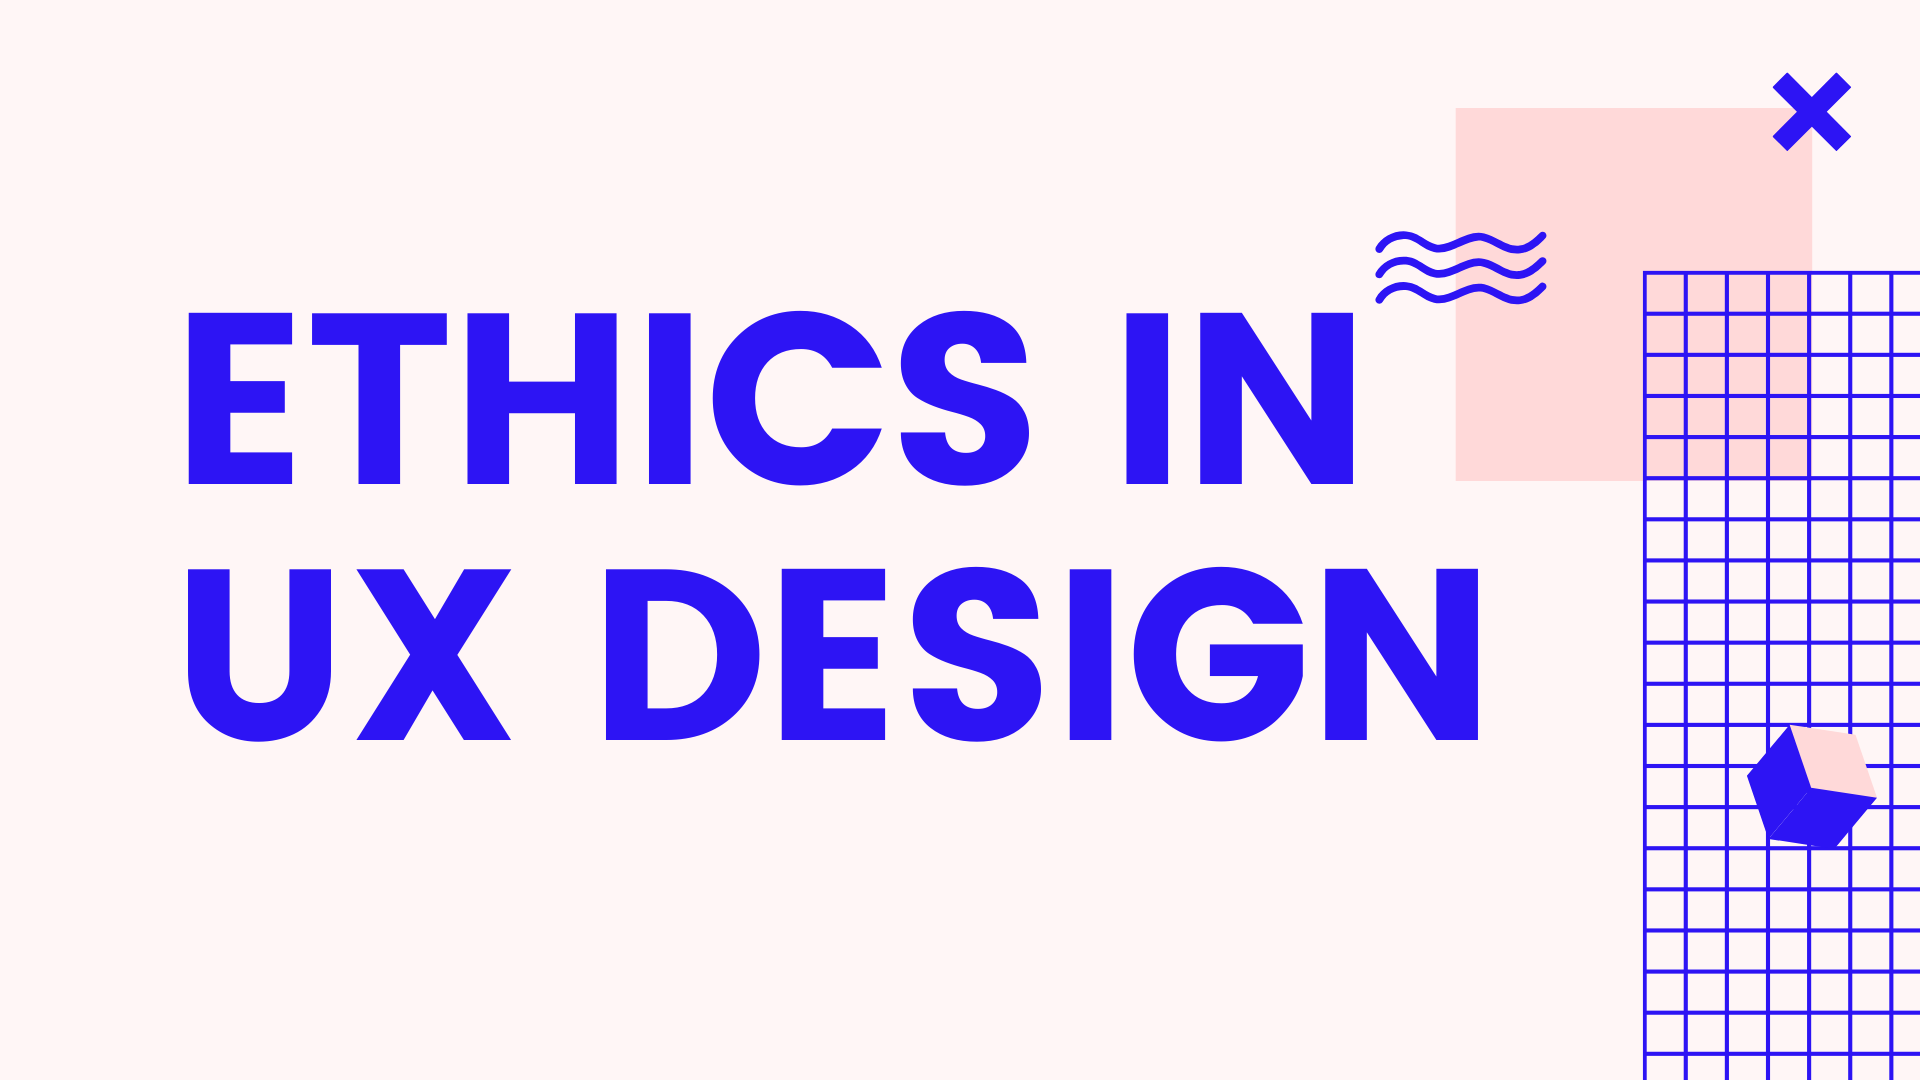 What's Ethical in UX Design